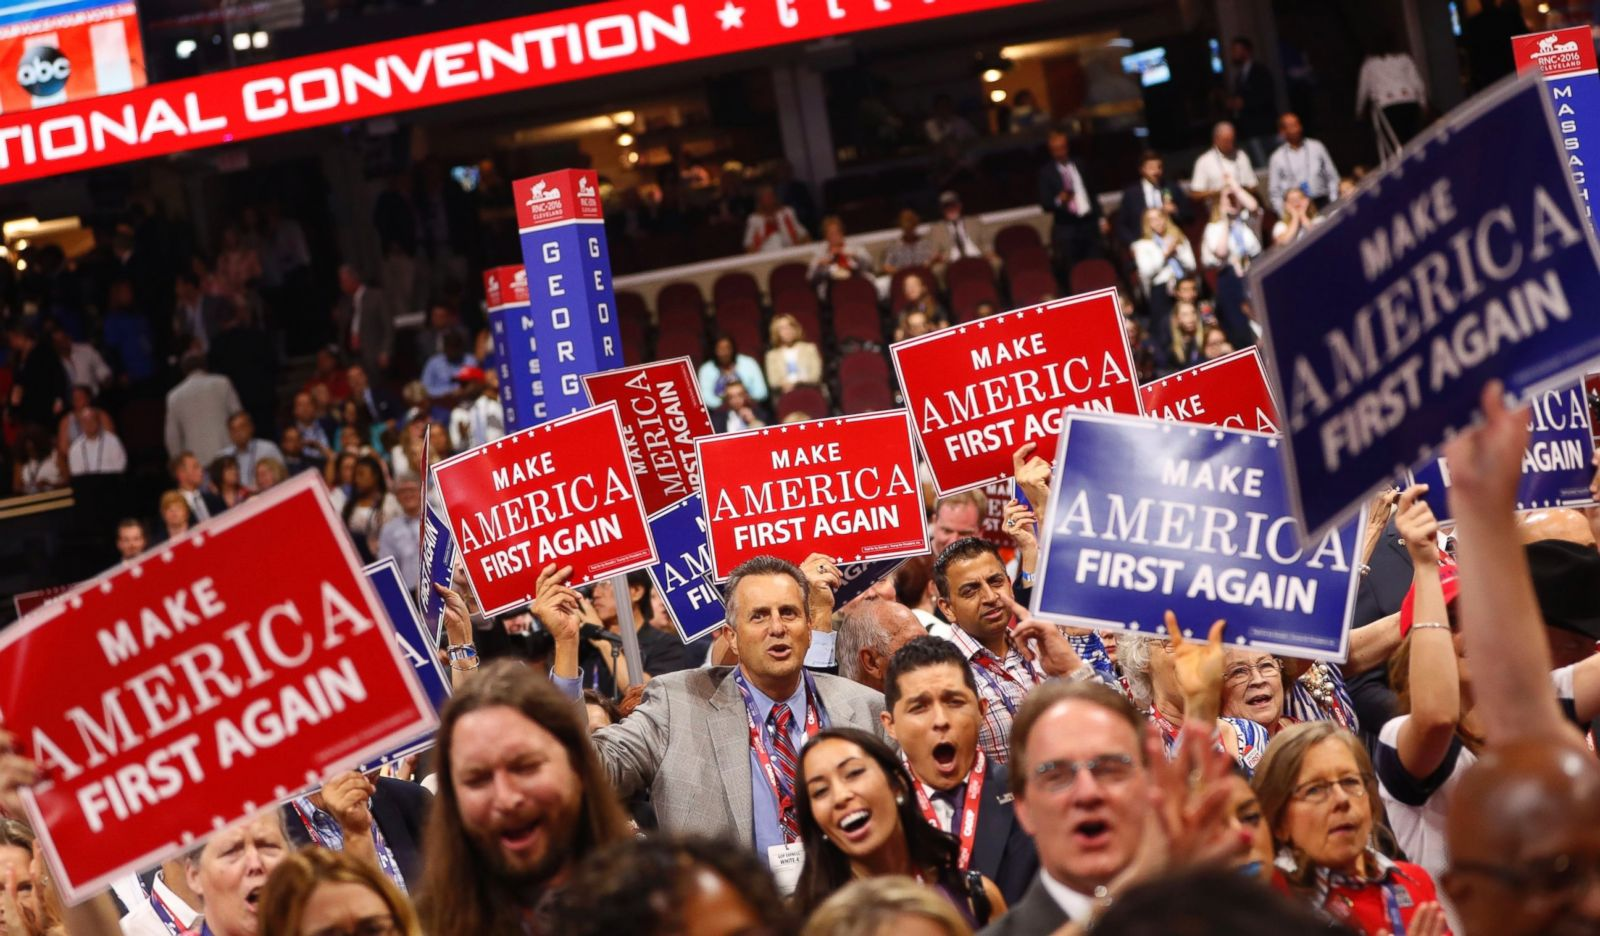 rt_rnc_crowd_signs_ps_160920_12x7_1600